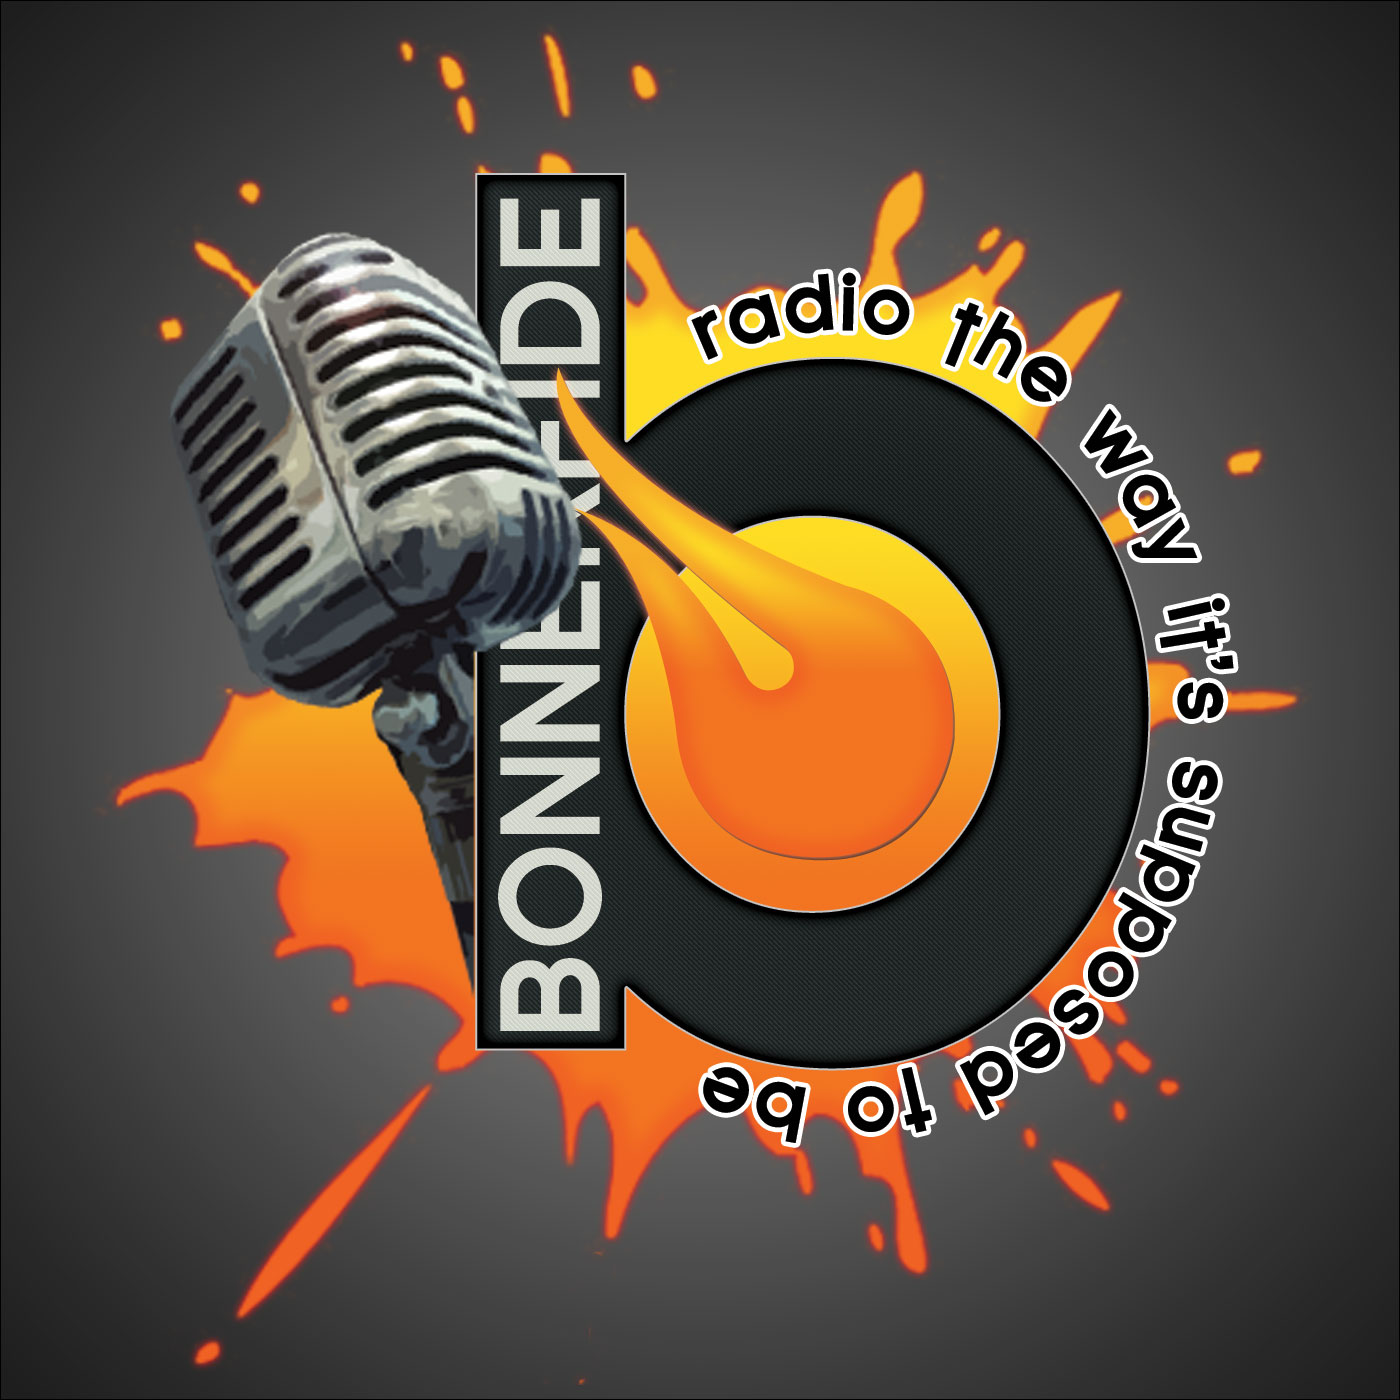 Bonnerfide Radio